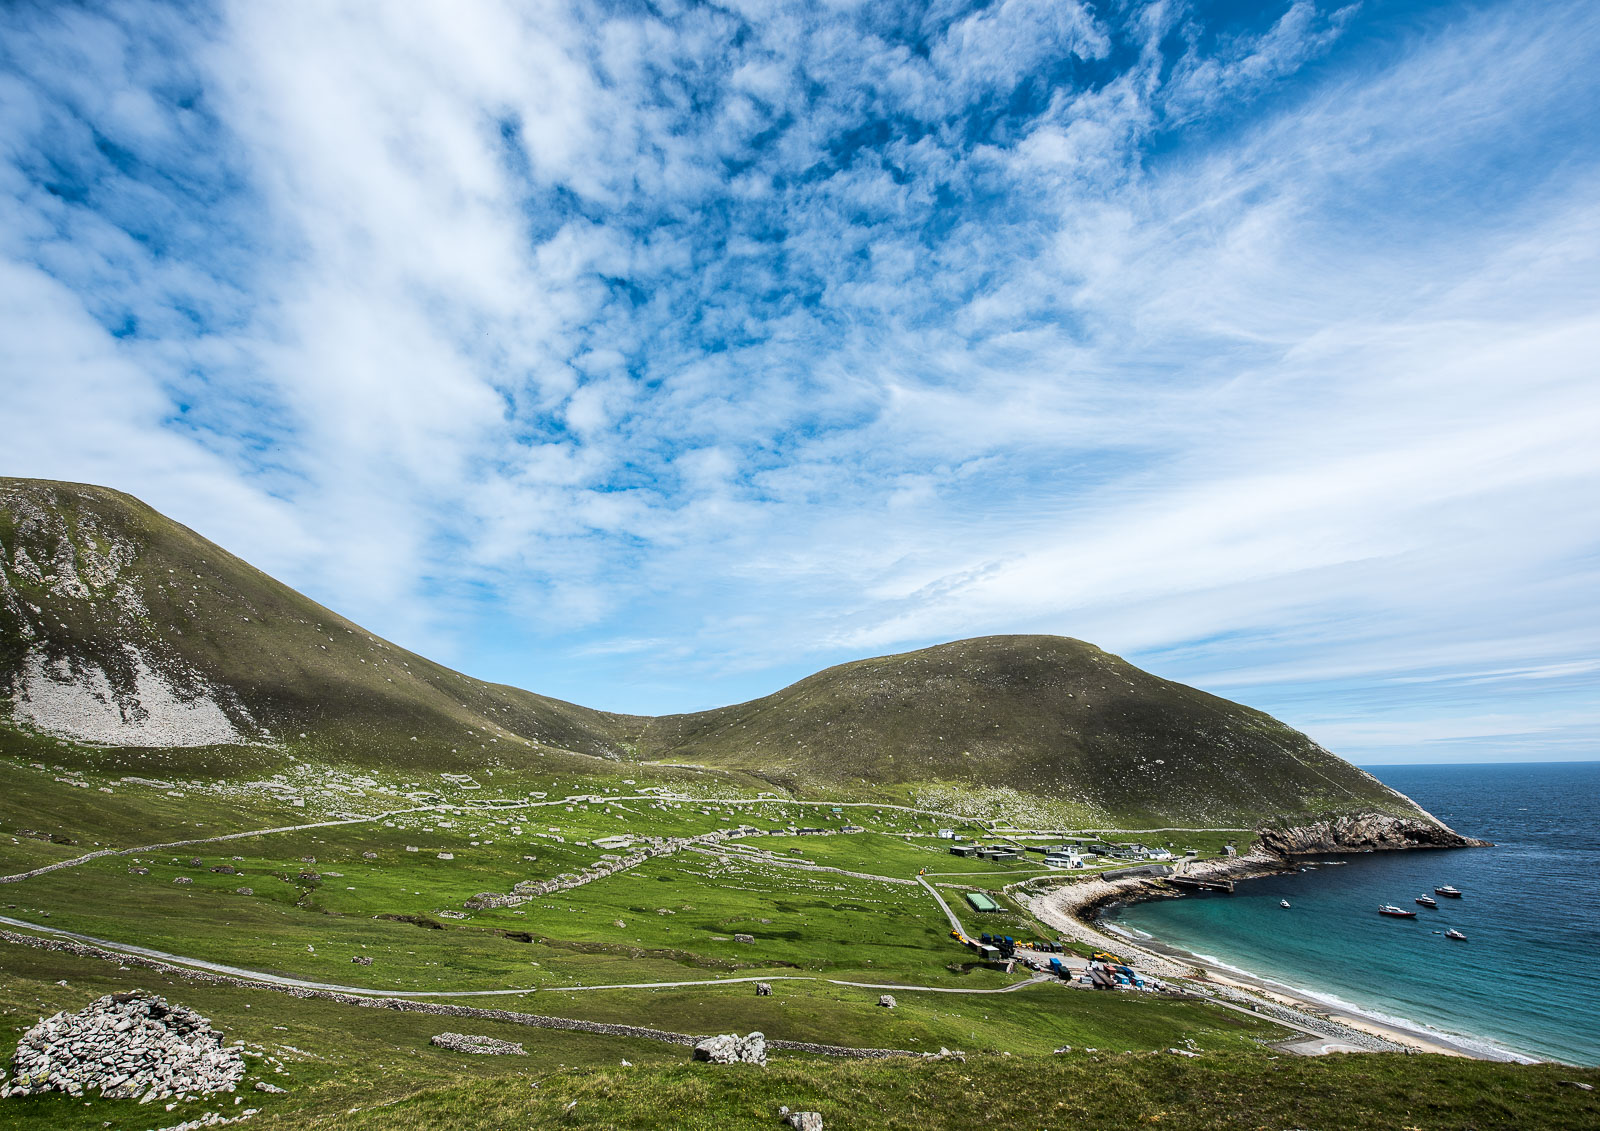 Village Bay, Hirta. Conachair on the left, Oiseval on the right.  Nikon D810 14-24mm f2.8 at 14mm. 1/320sec f8 ISO 64